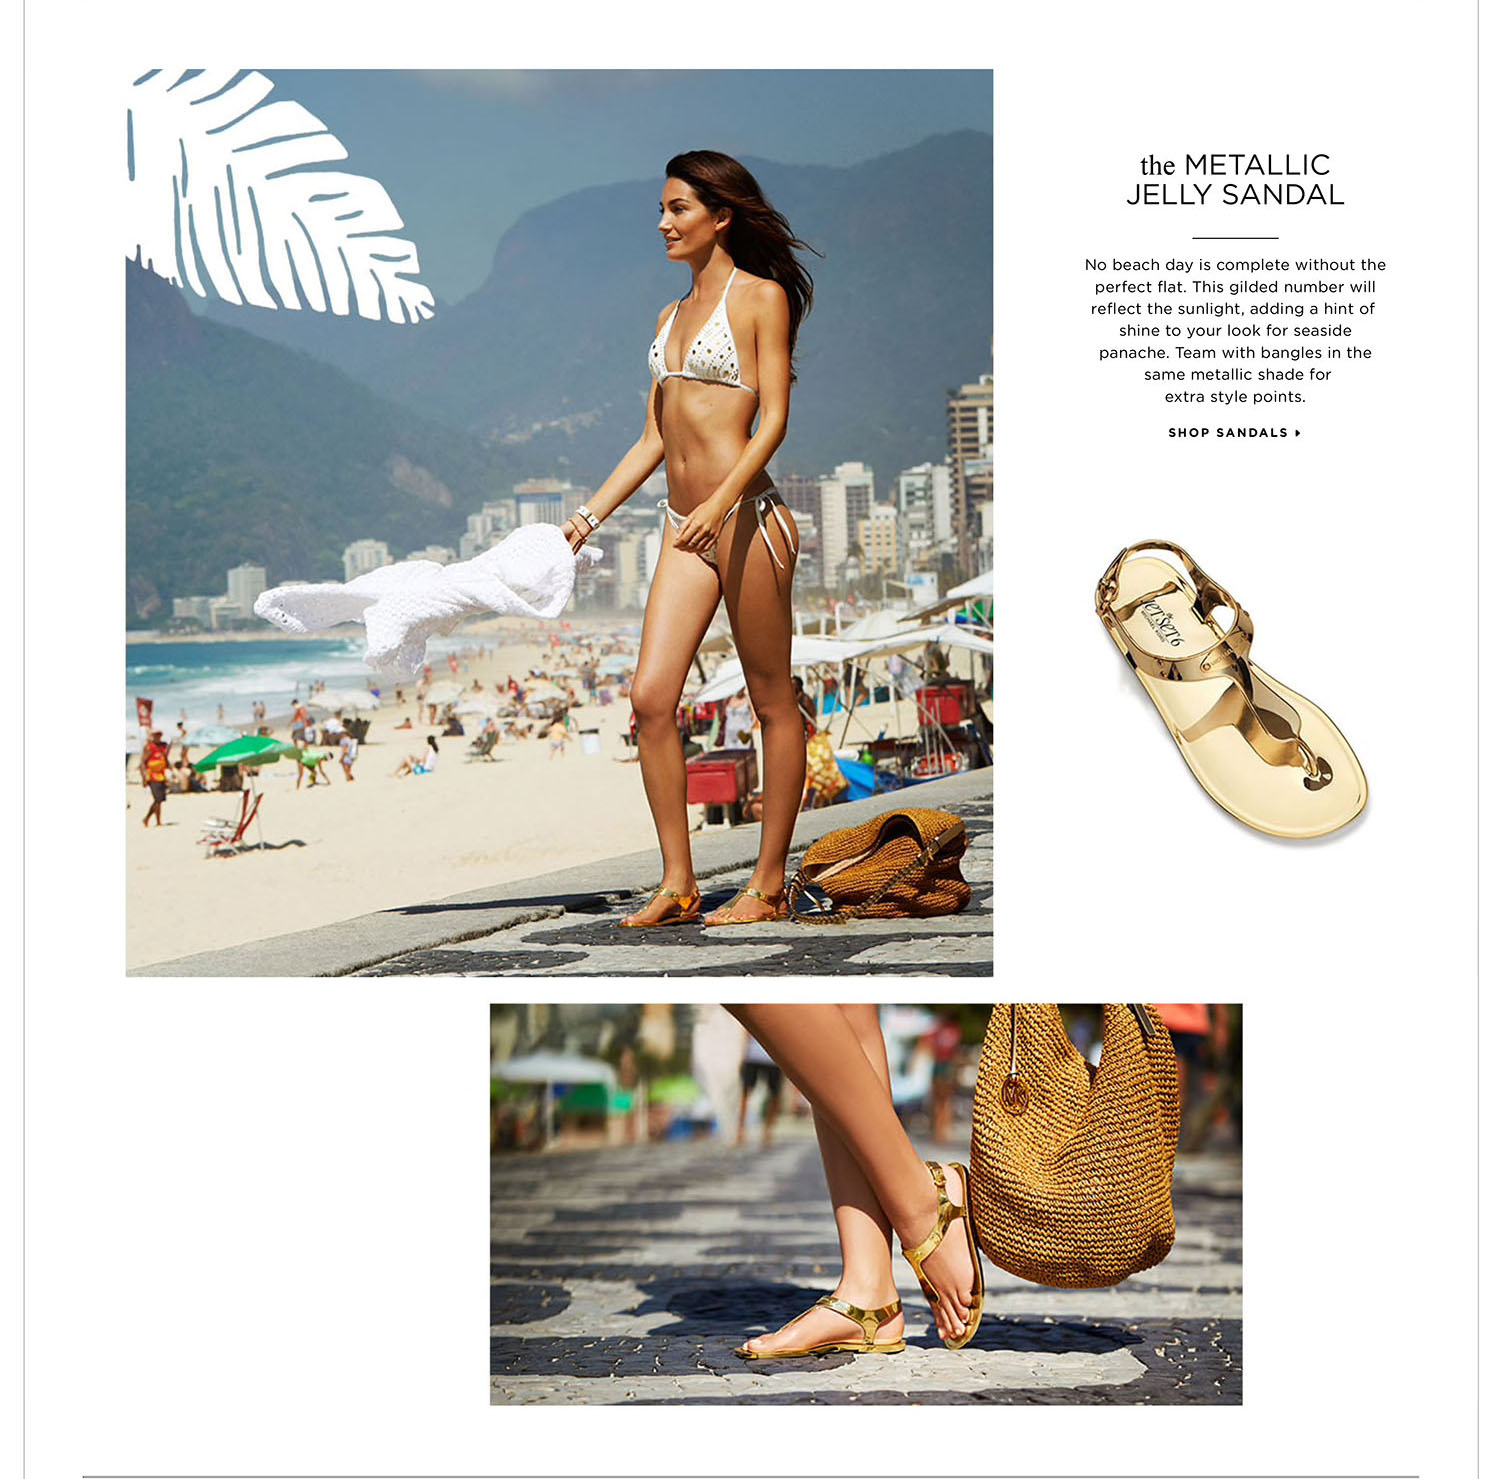 Michael Kors Jet Set 6 | Destination Kors _WEB EXECUTION_sm_p2